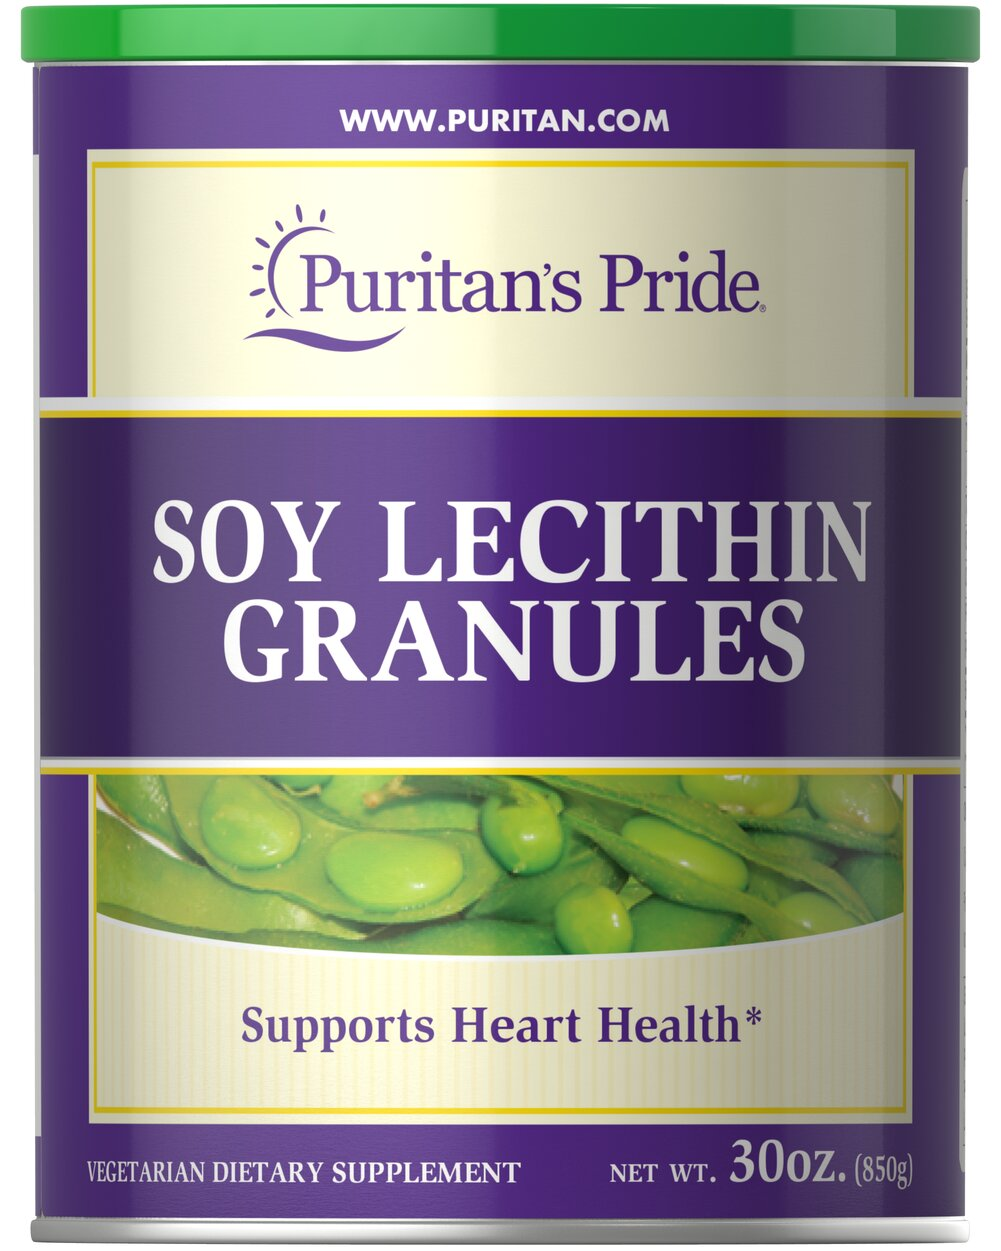 Soy Lecithin Granules 1680 mg <p>95% SOY PHOSPHATIDES </p><p>Finest Quality</p> <p>Supports Mental Function & Nerve Cell Health**</p><p>Lecithin is an important natural source of choline, inositol, and linoleic acid. Choline and Inositol are vital components of all cell membranes, and play important roles in cell growth and function.**</p> 30 oz Granules 1680 mg $22.48